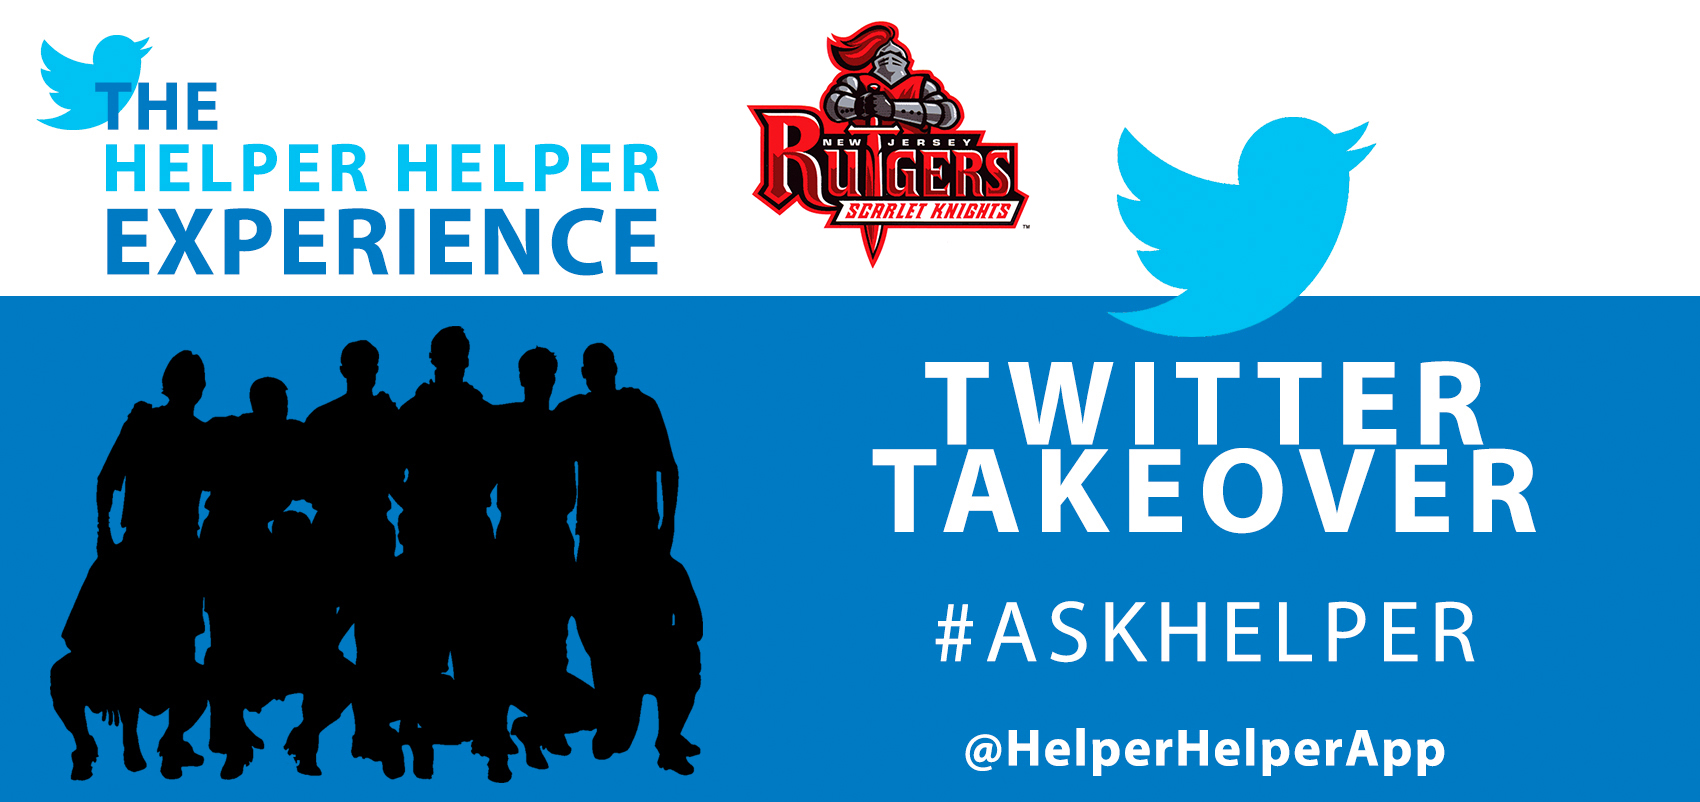 977ea63703 Rutgers Athletics Twitter Takeover - Helper Helper